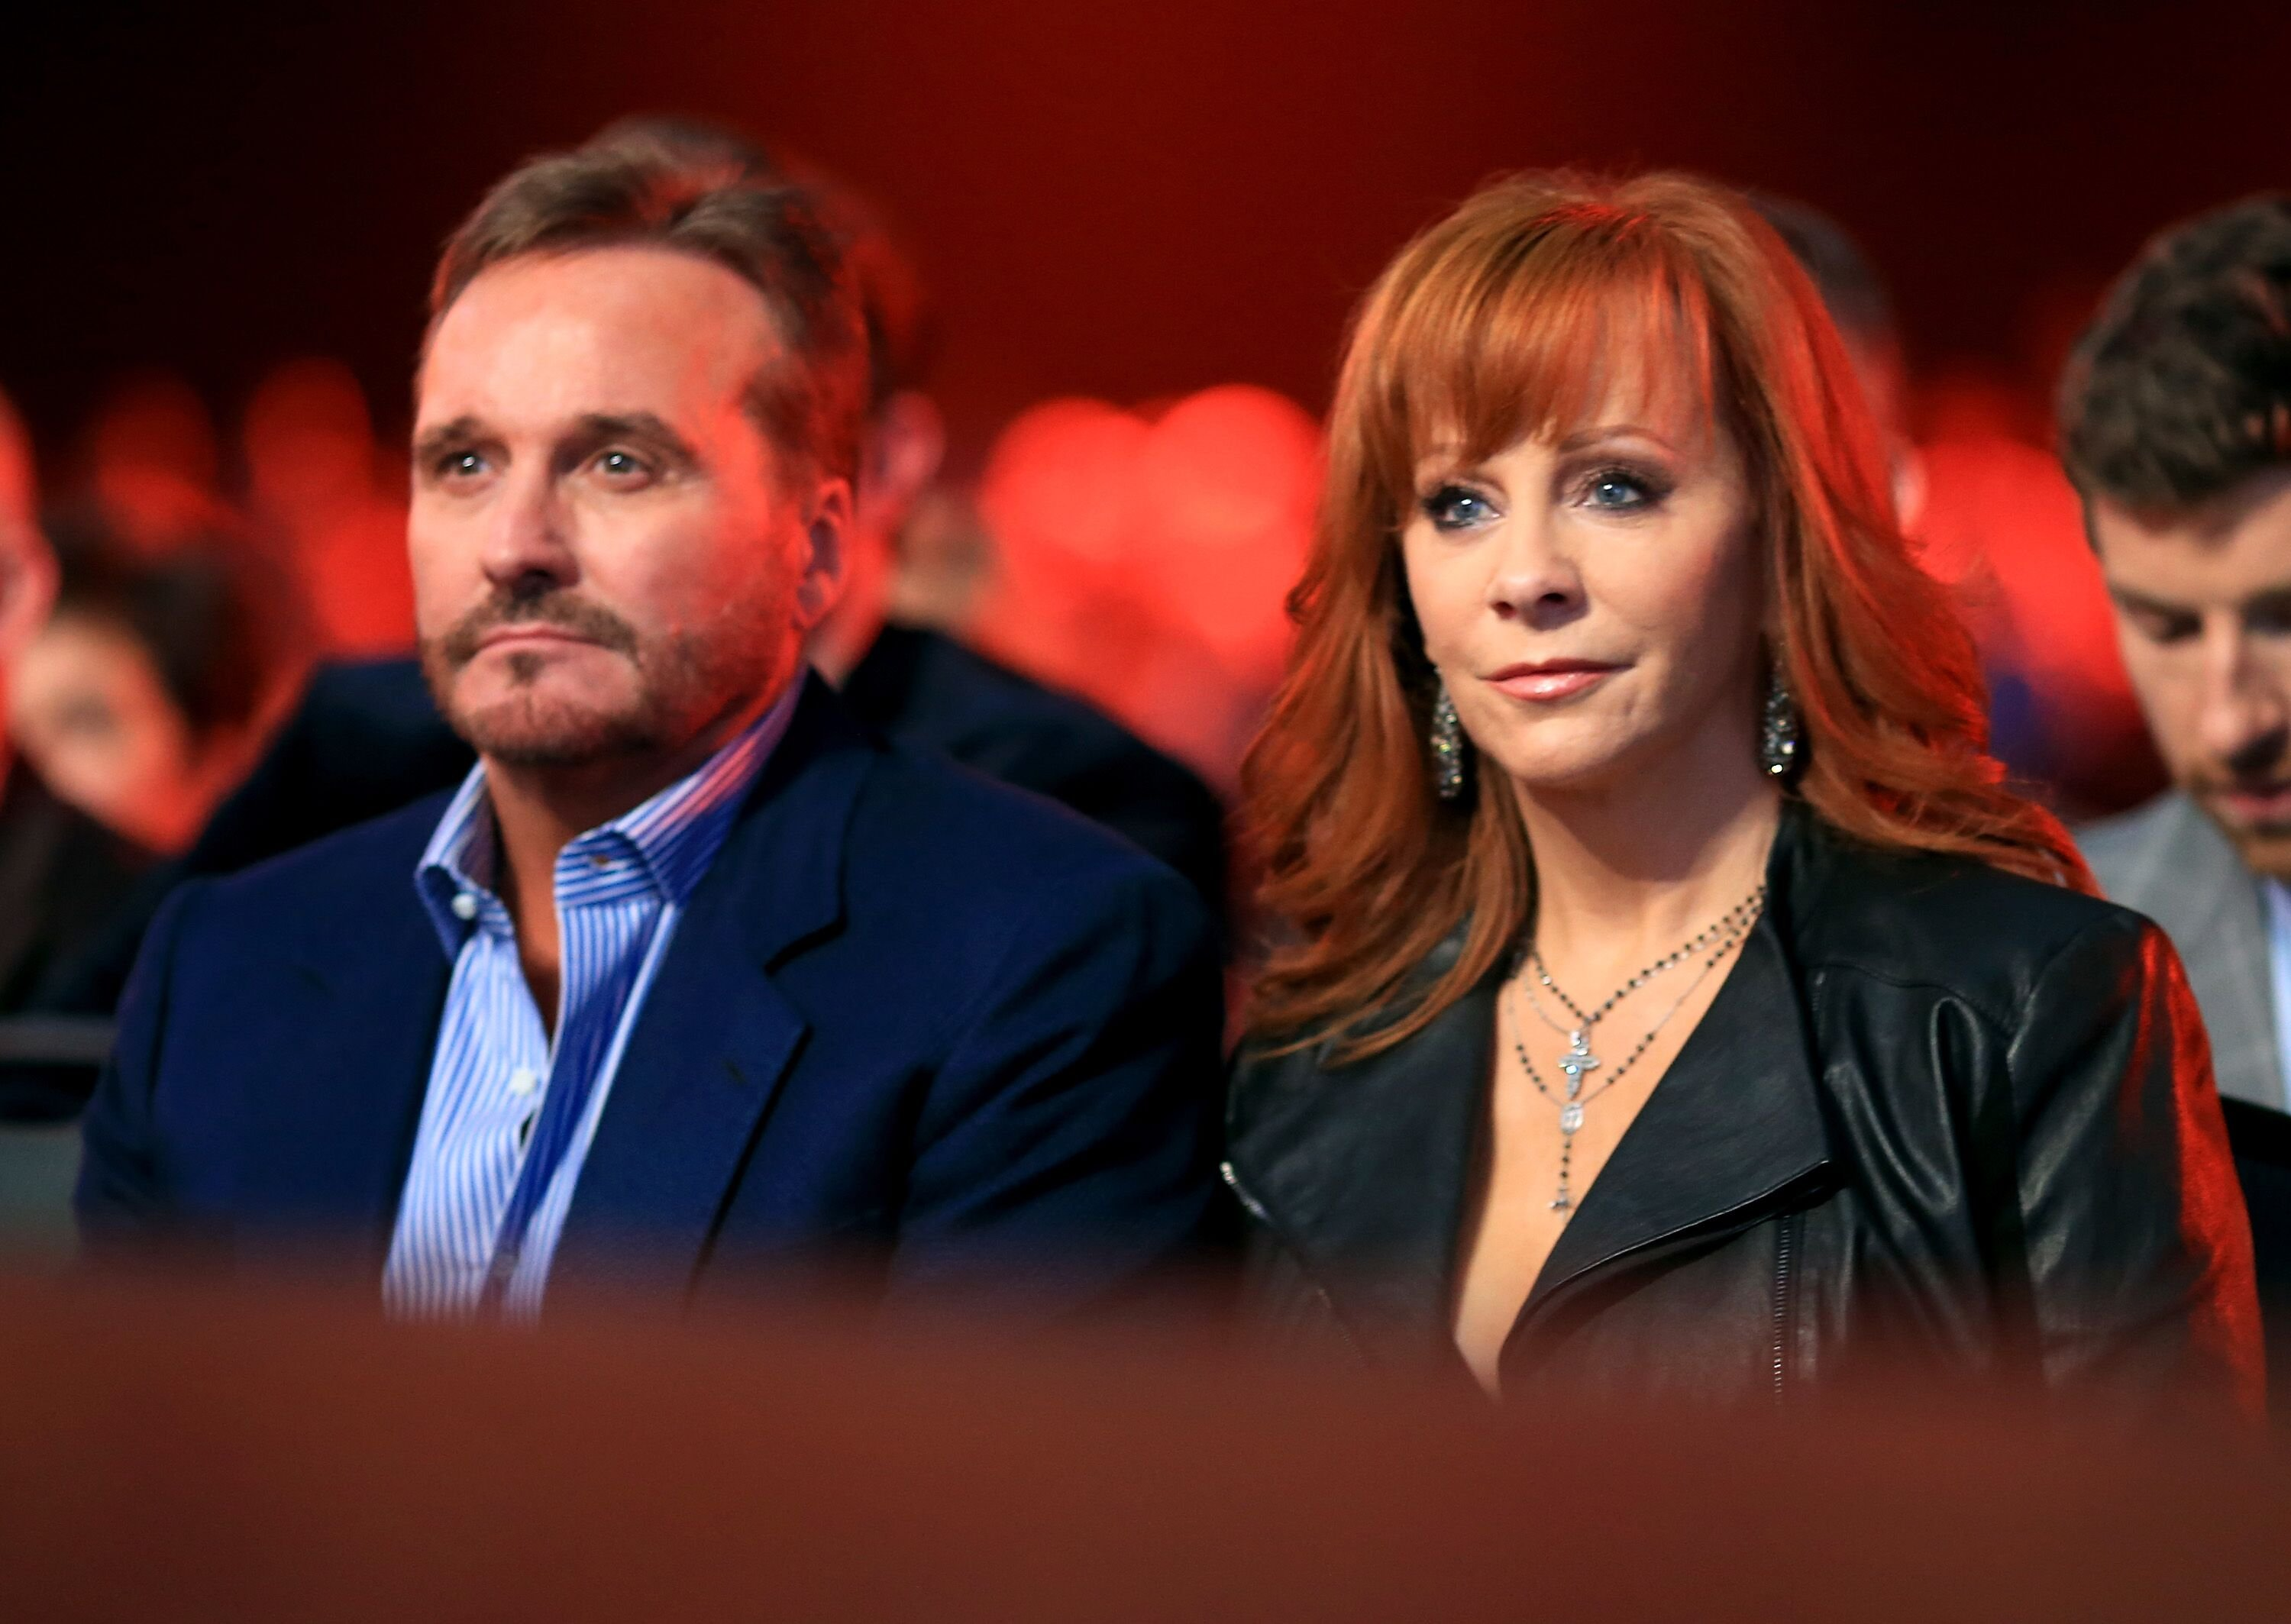 Narvel Blackstock and Reba McEntire attend the 2014 American Country Countdown Awards. | Source: Getty Images